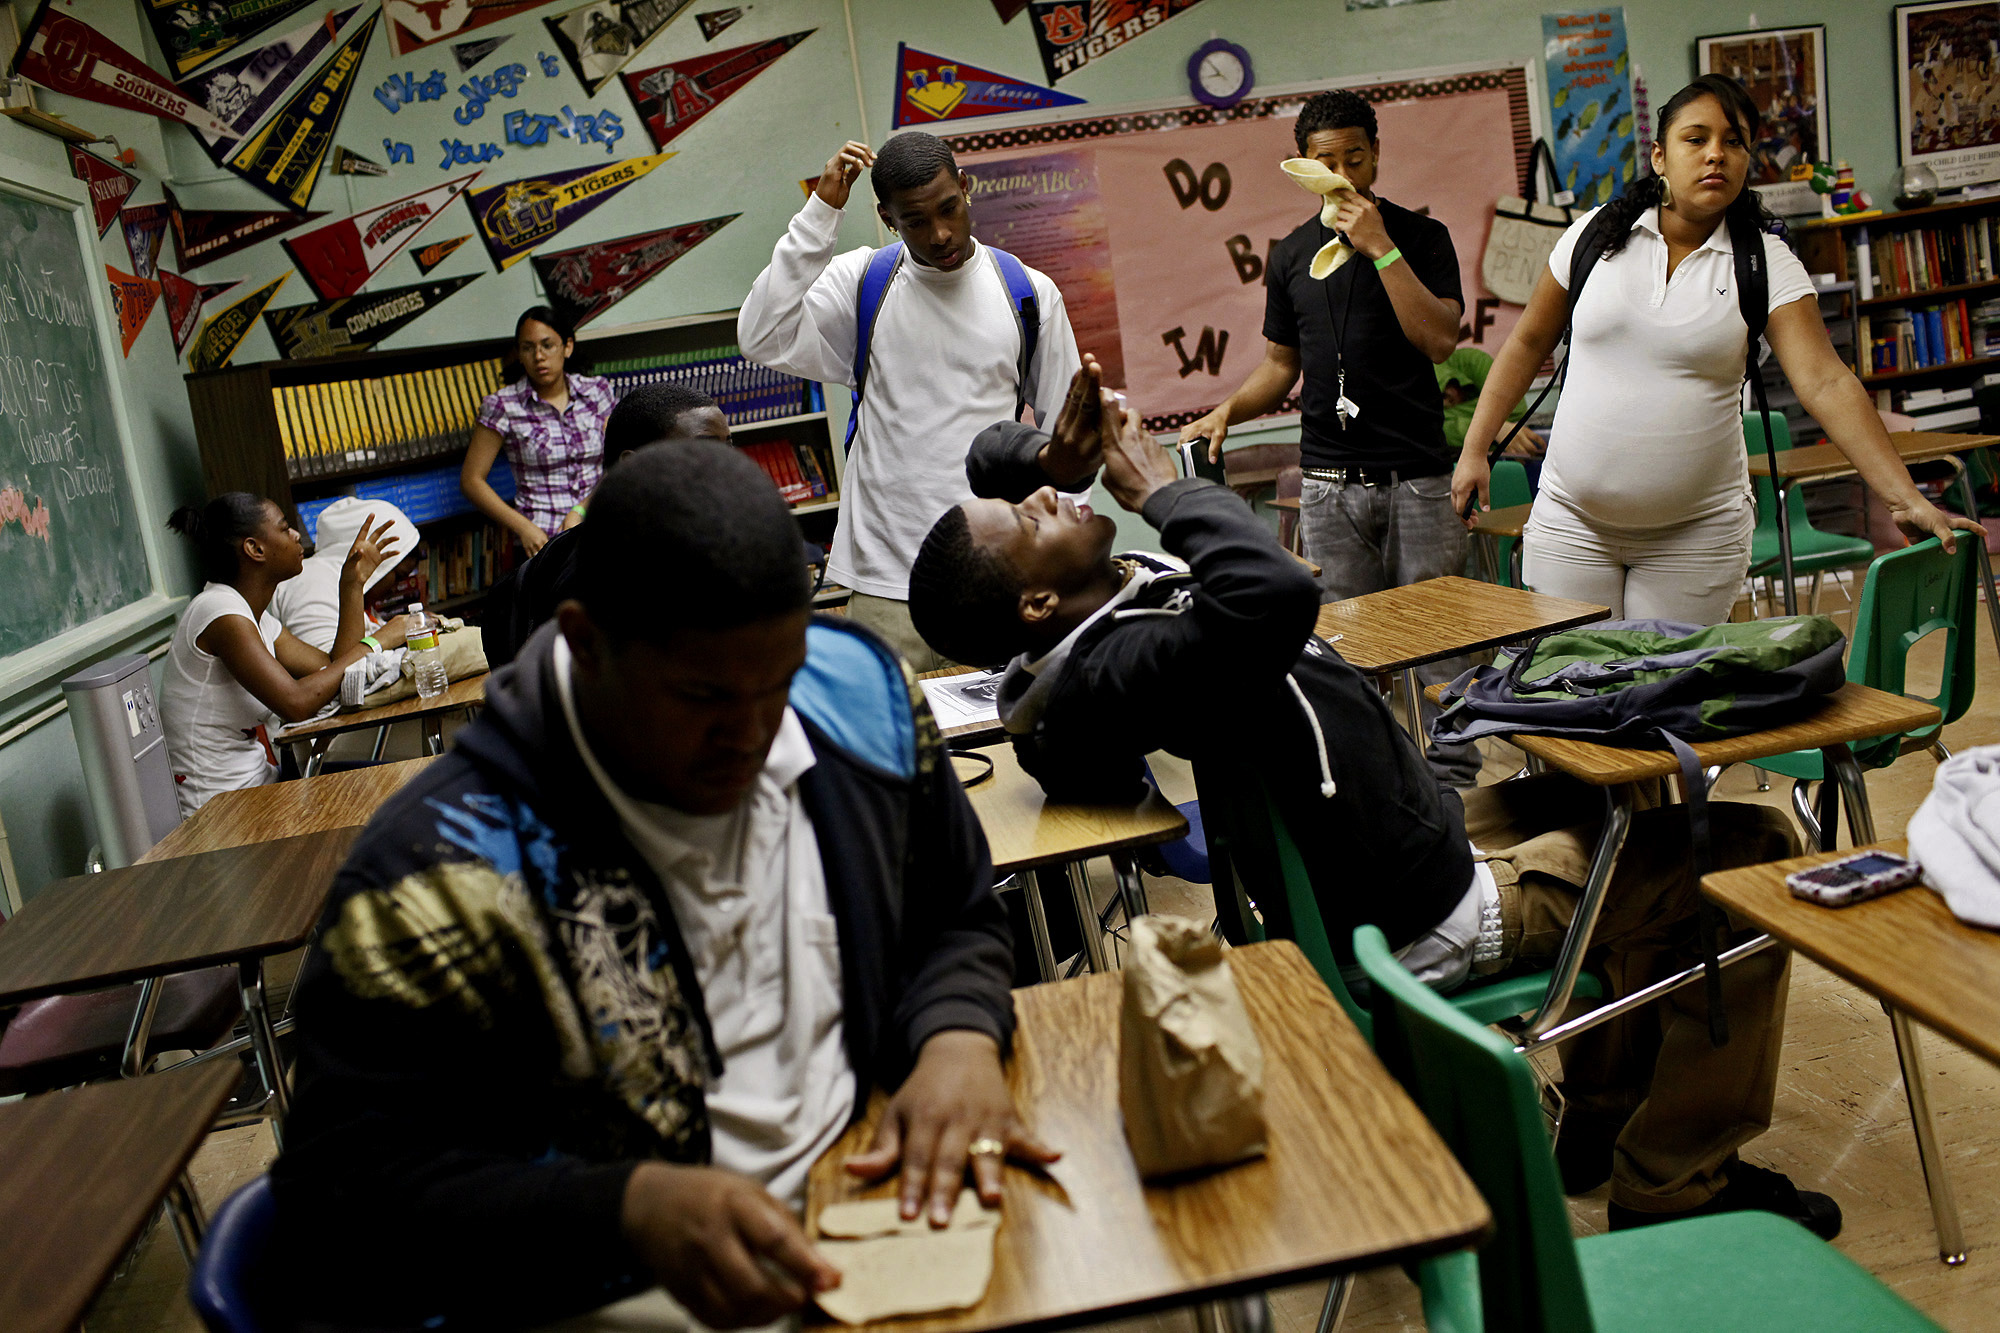 Milli Zepeda, 17, almost nine months pregnant, waits with her class for instructions on where to go from a substitute teacher at Sam Houston High School.  ©Lisa Krantz/San Antonio Express-News/ZUMA Press